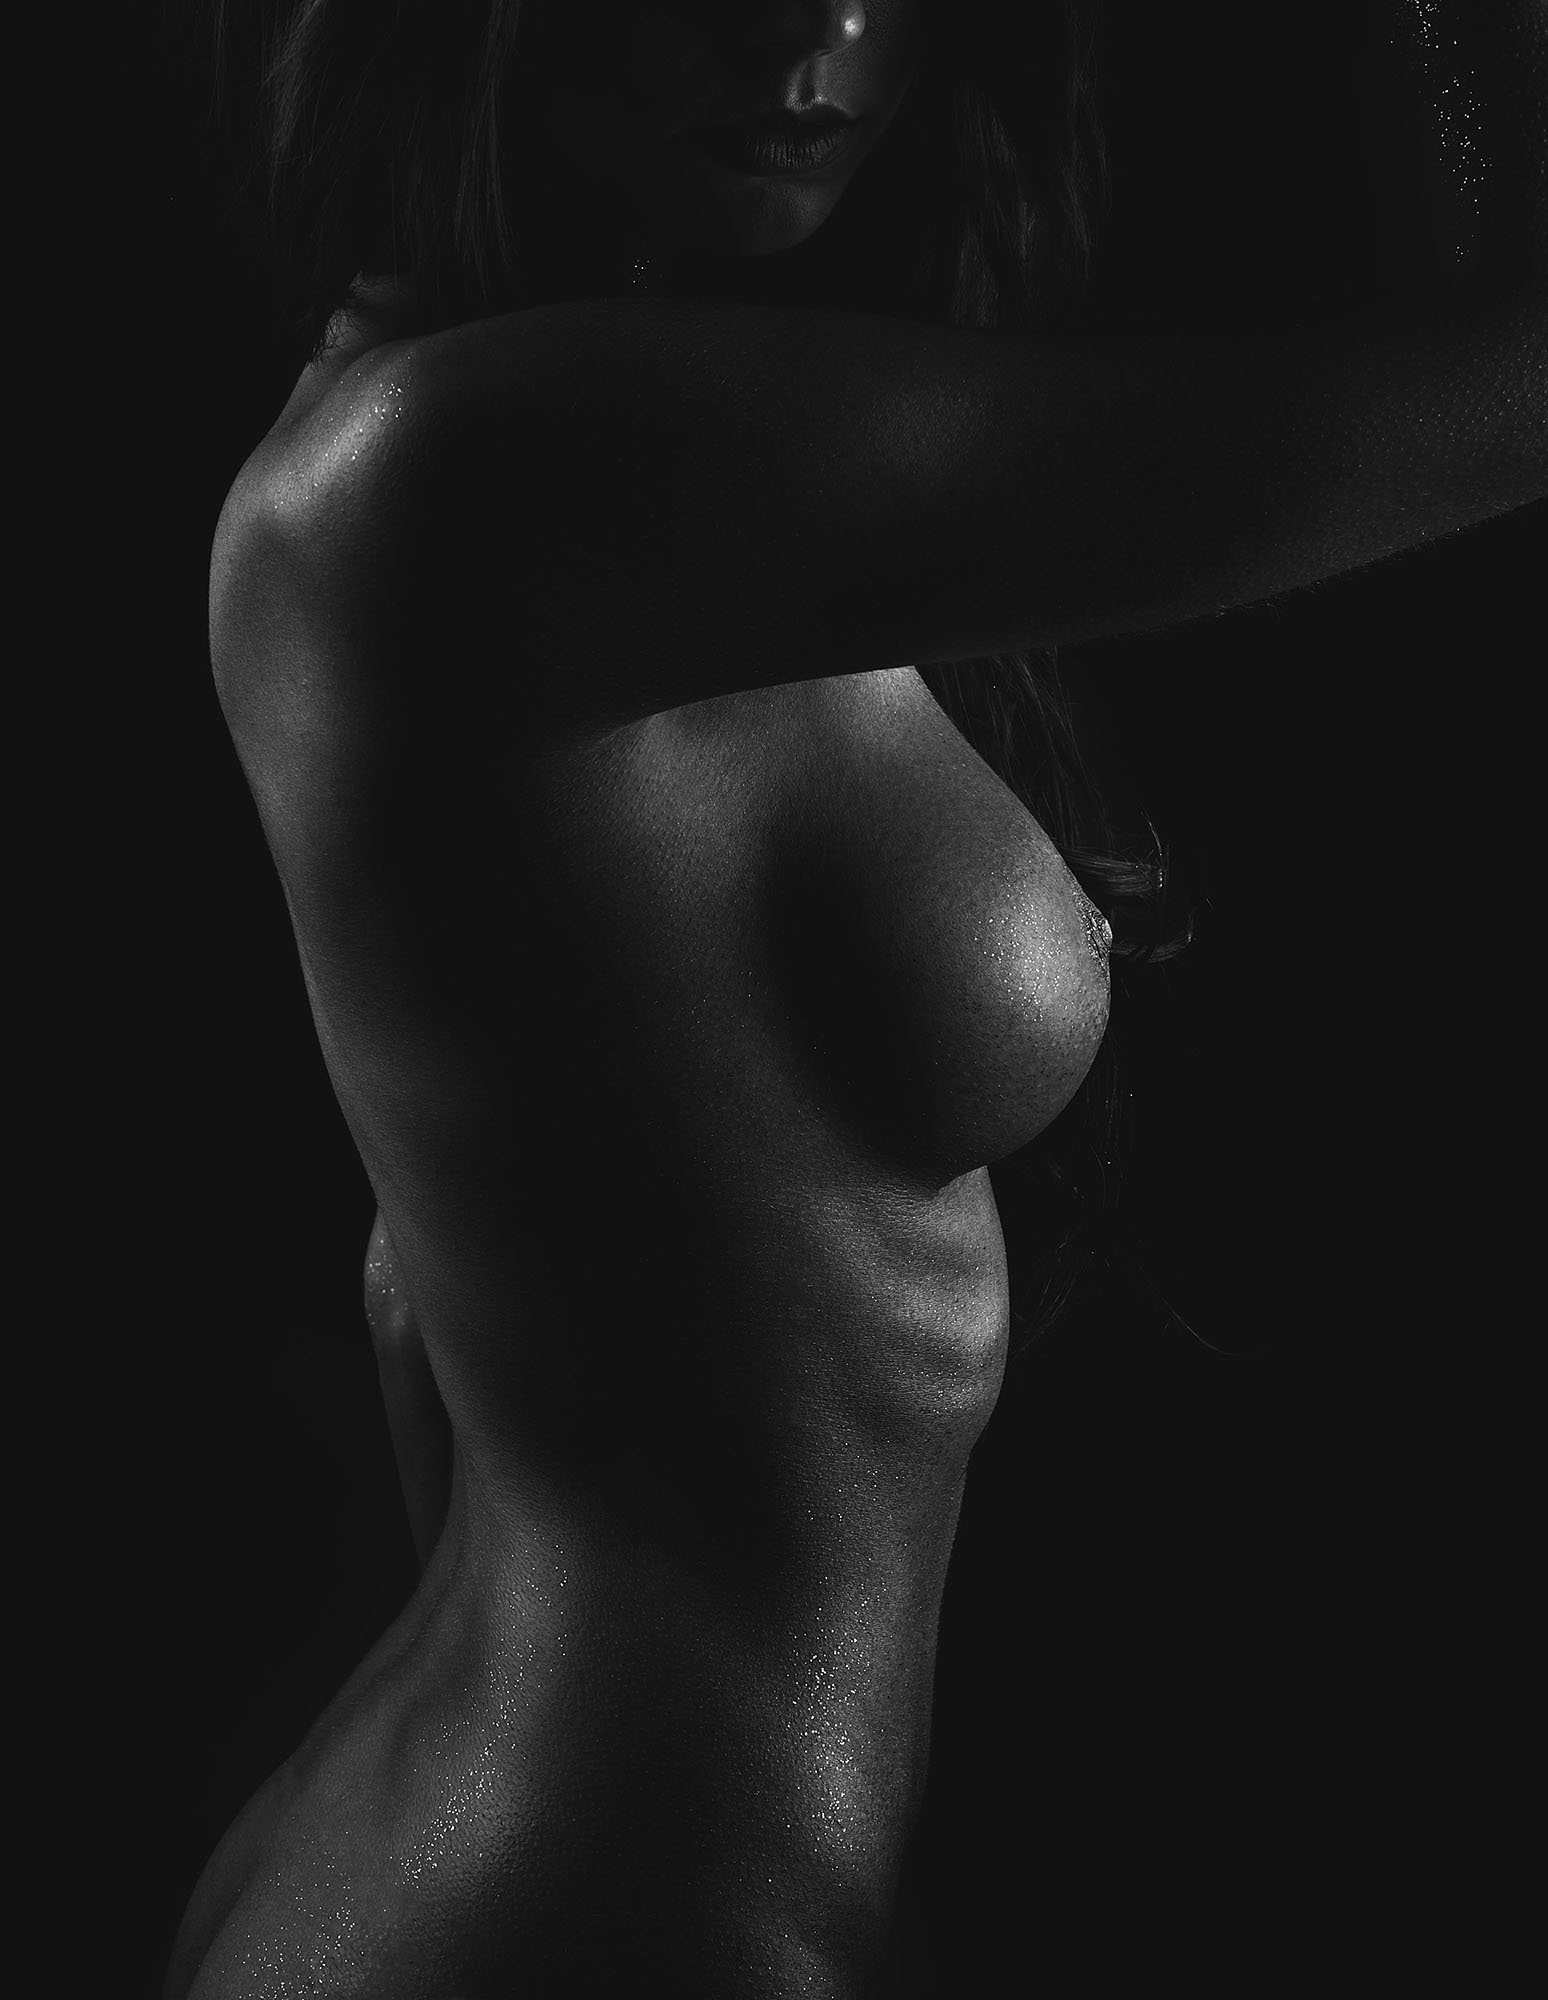 art-nude-black-and-white